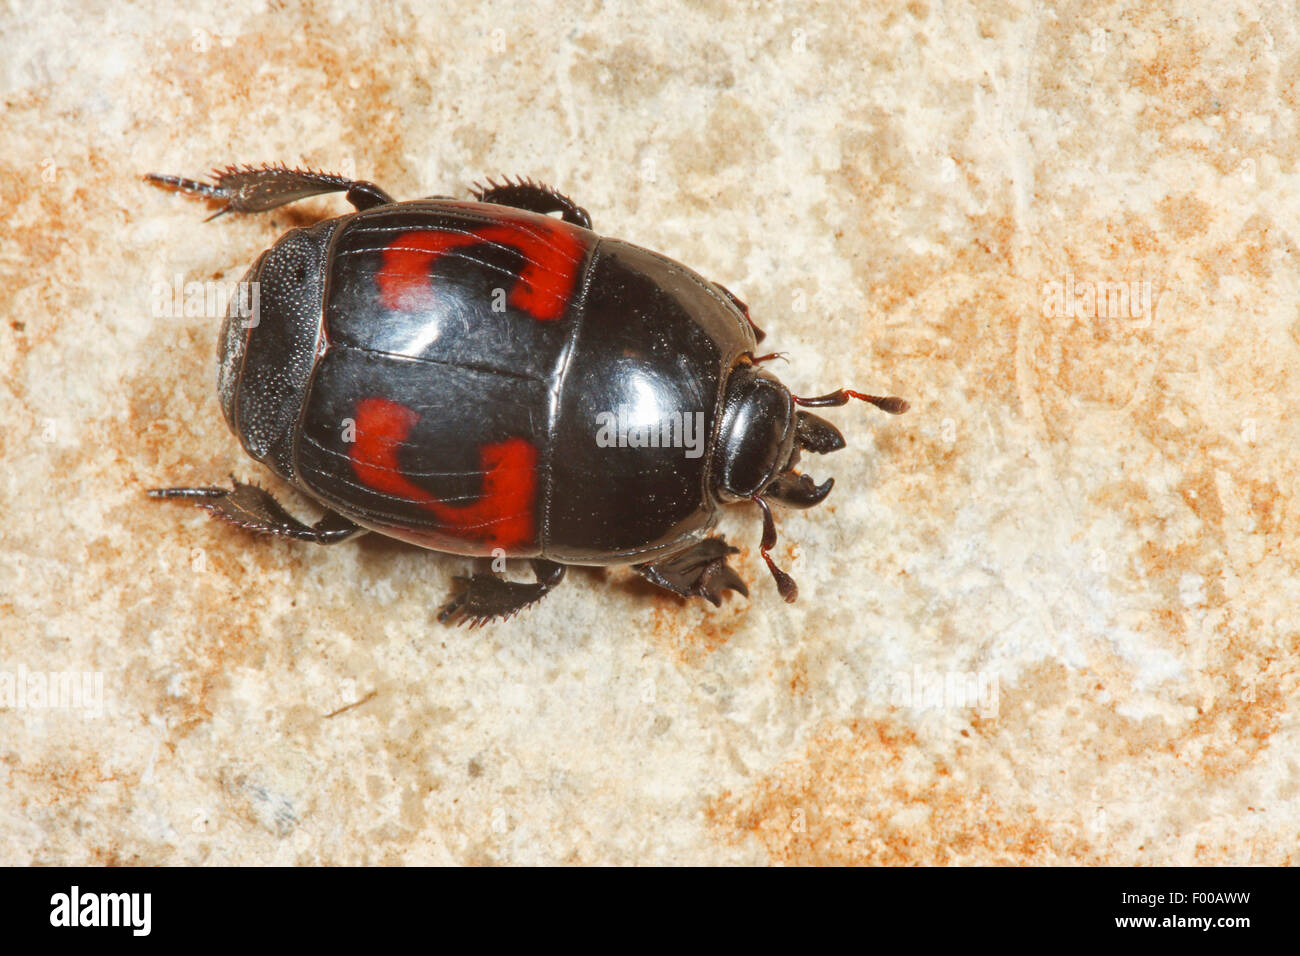 Lunar spotted mimic beetle, Lunar-spotted Mimic Beetle (Hister quadrimaculatus), on a stone, Germany - Stock Image